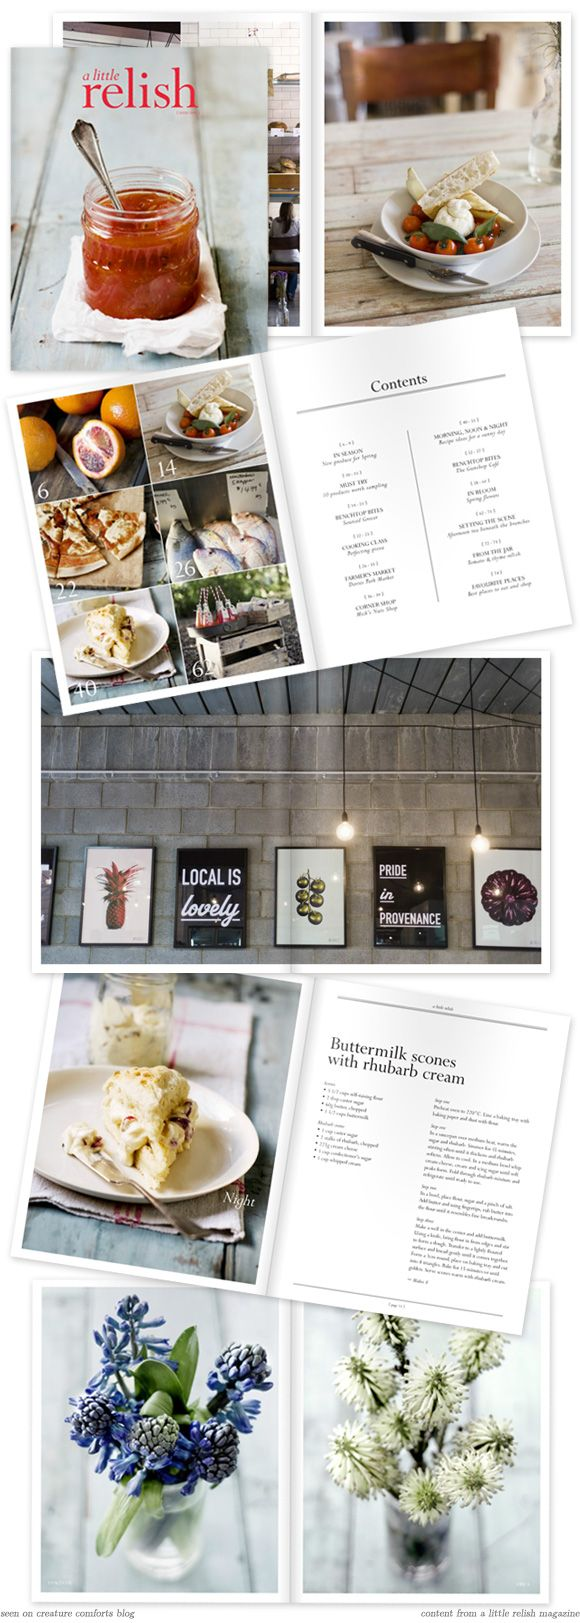 New e-magazine called A Little Relish - beautiful photography, fun recipes, and other stuff